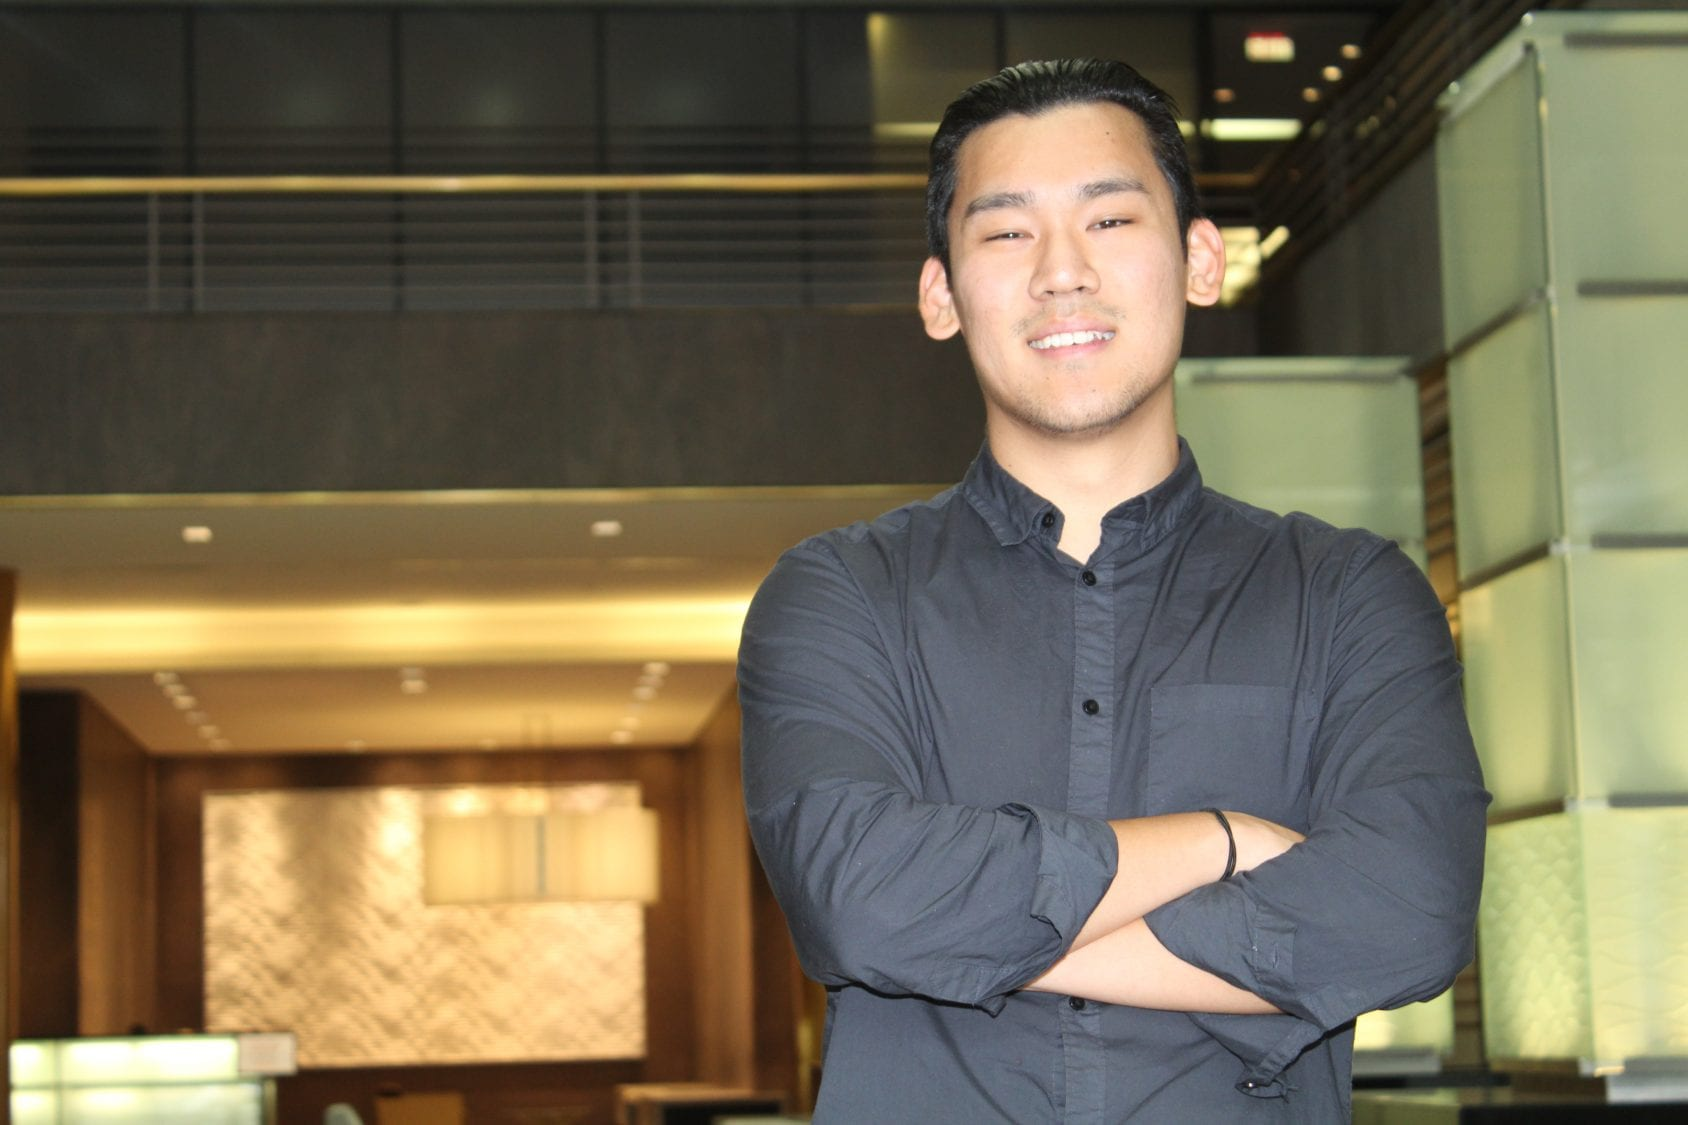 Student entrepreneur standing in lobby and outside of office building